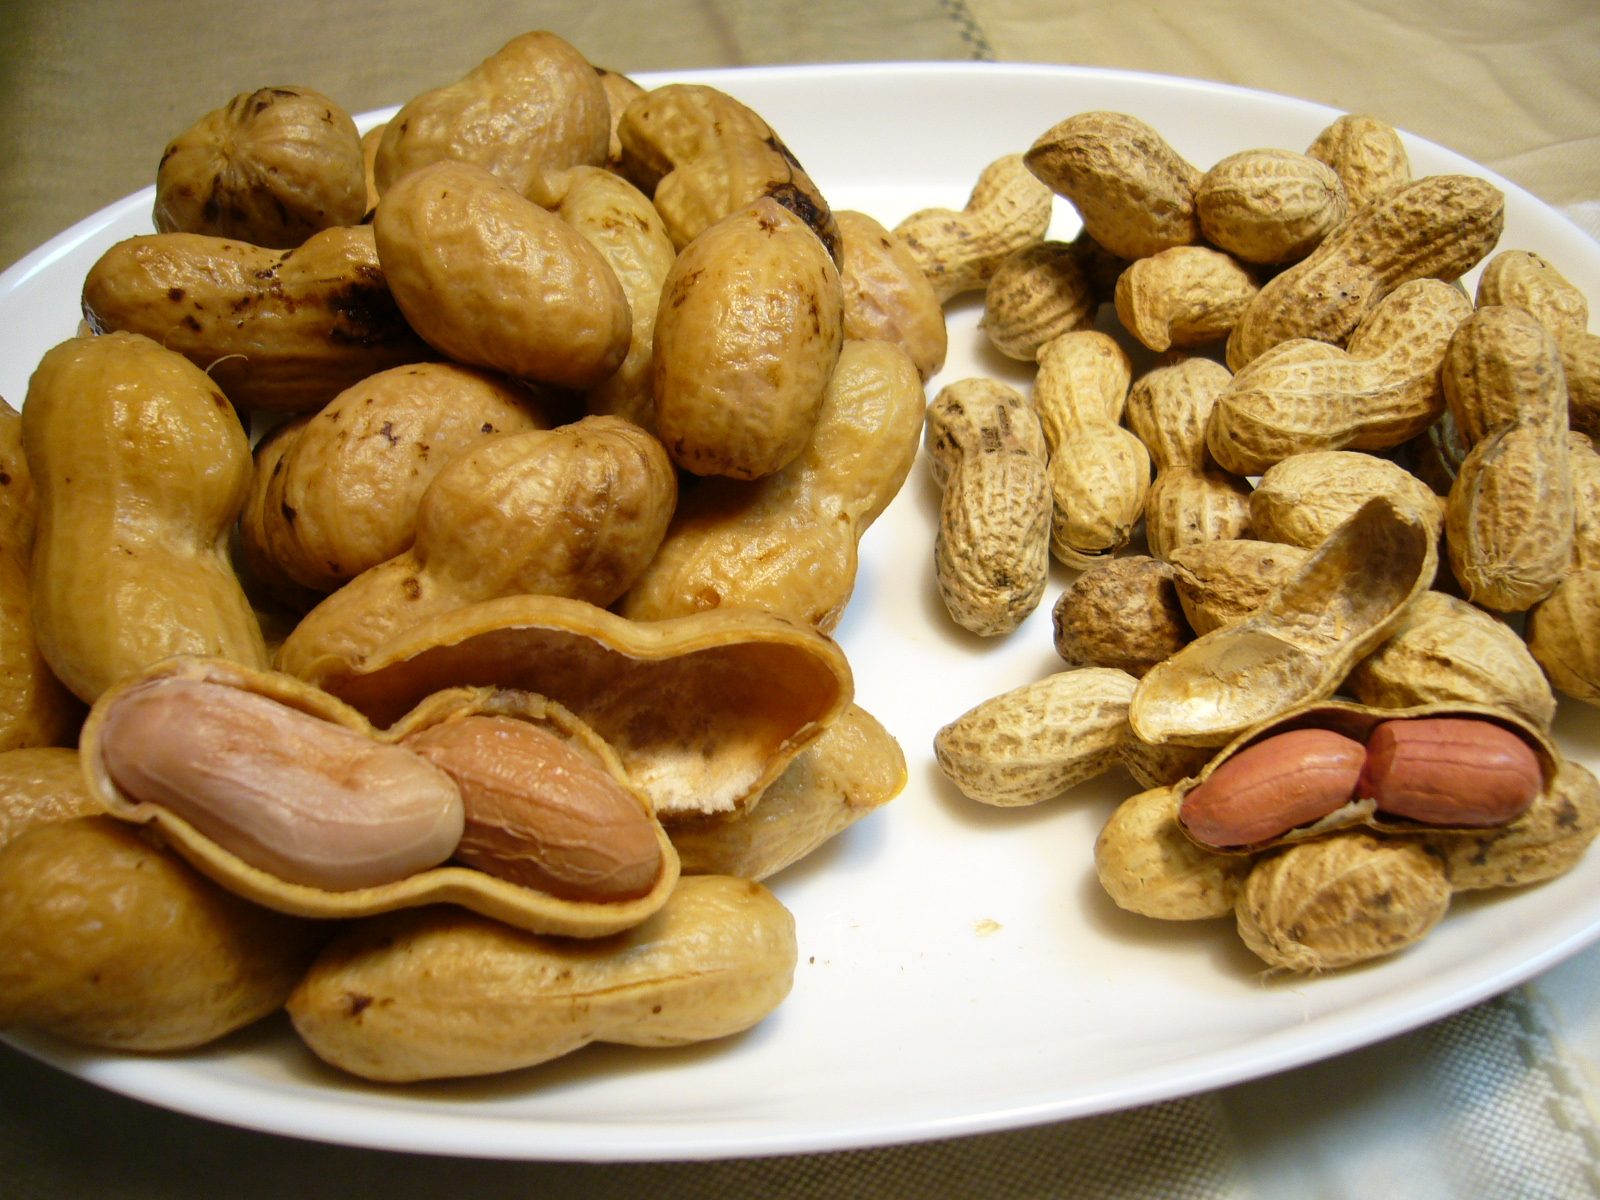 Difference between Green Peanuts and Raw Peanuts